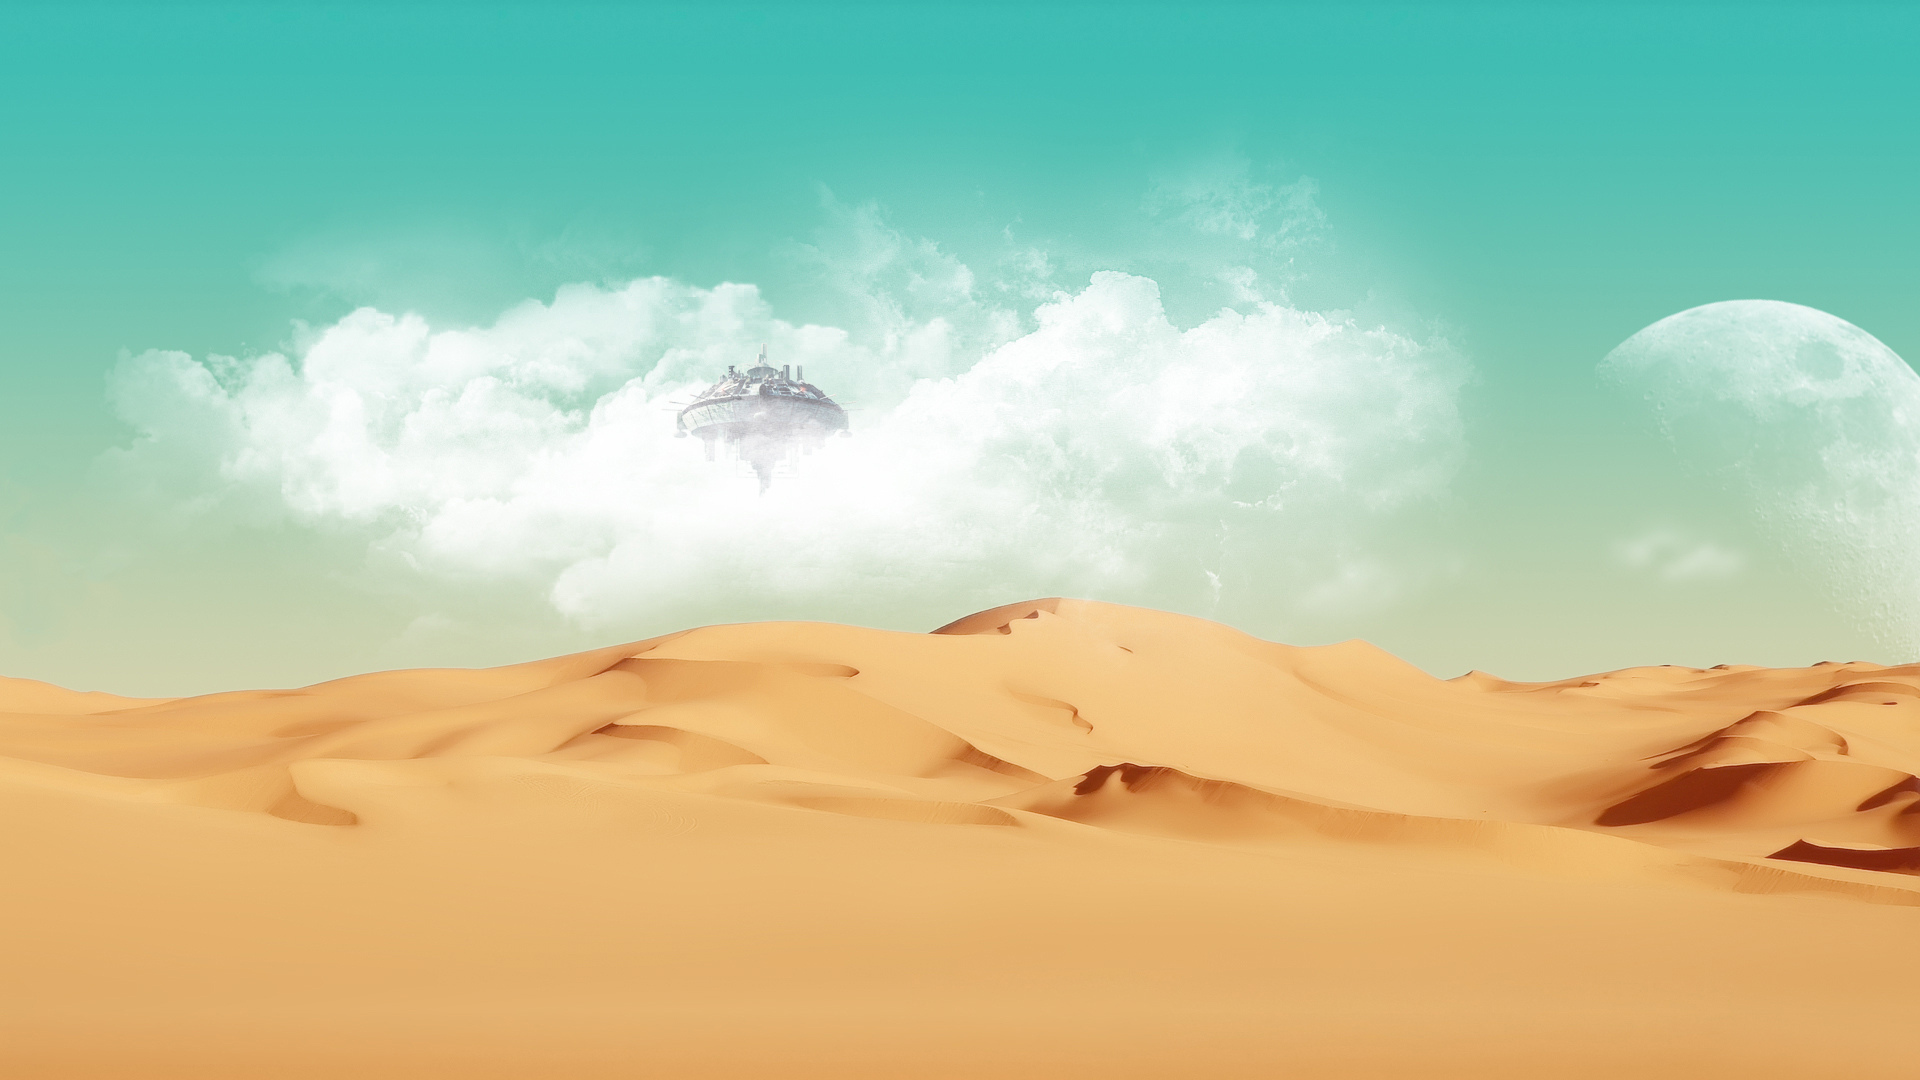 by, планета, пустыня, space and desert, liverpoolfanau